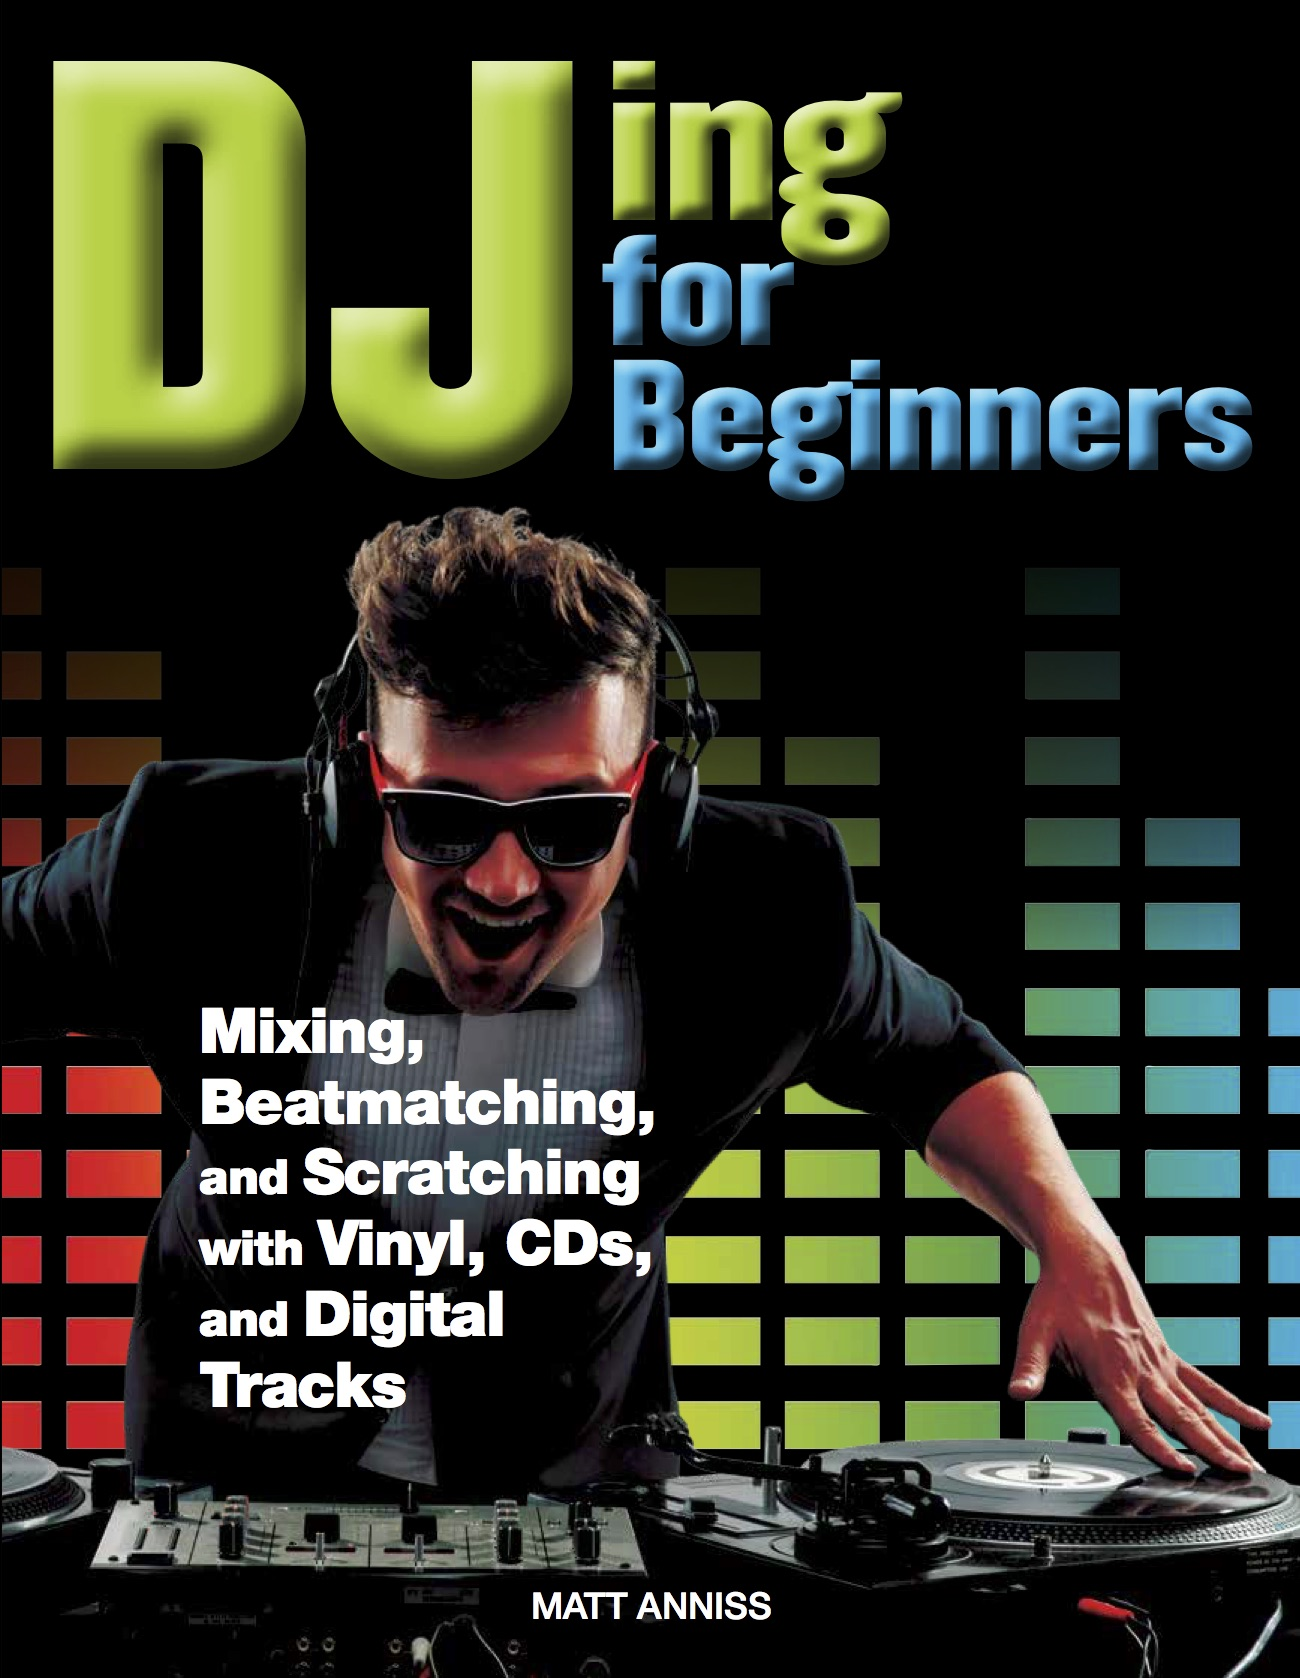 DJing for Beginners